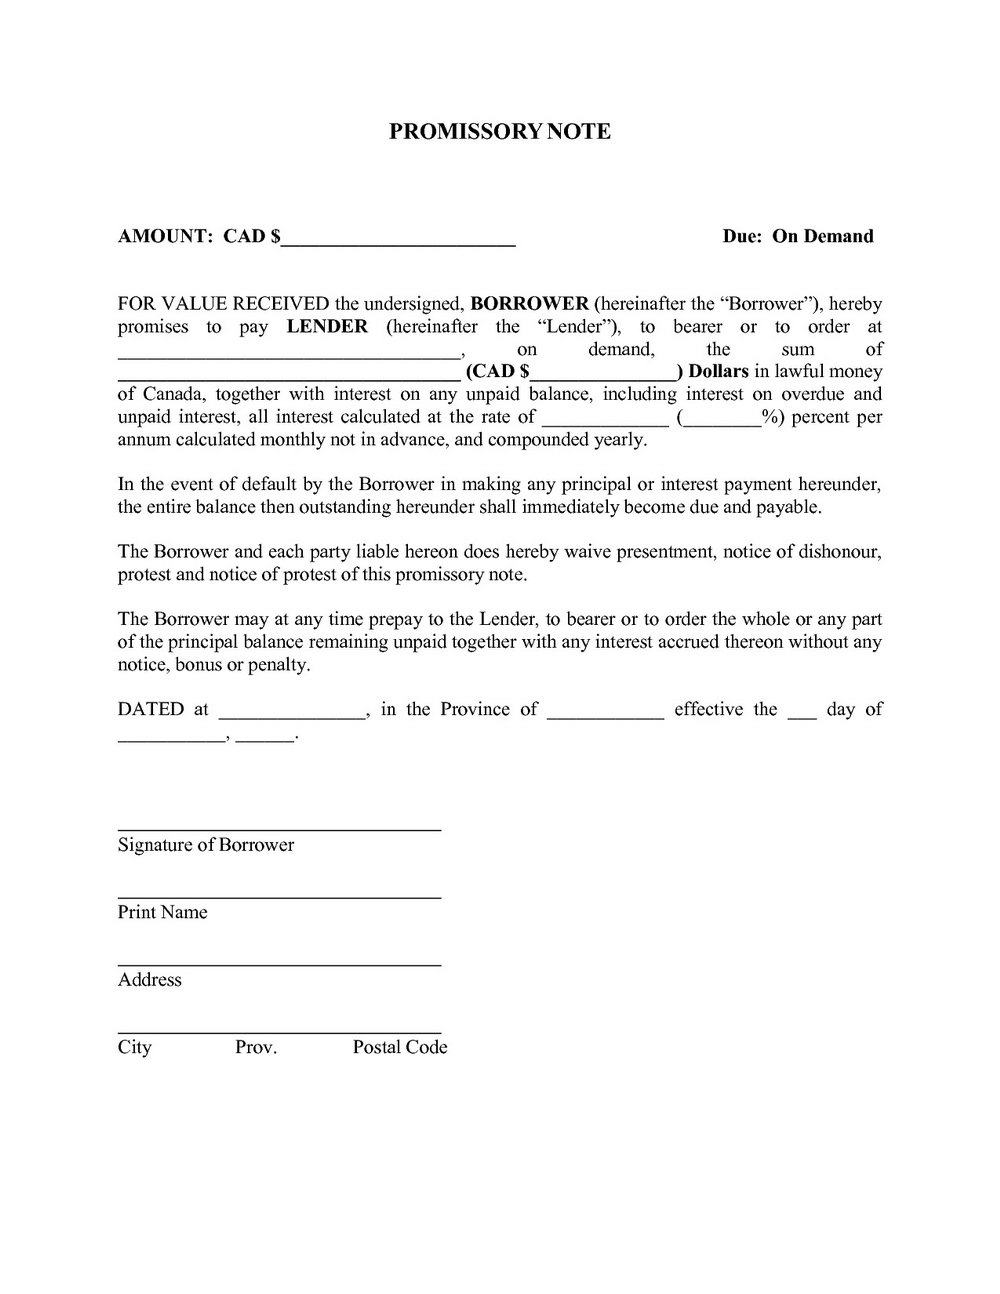 Promissory Note Format Indian Law